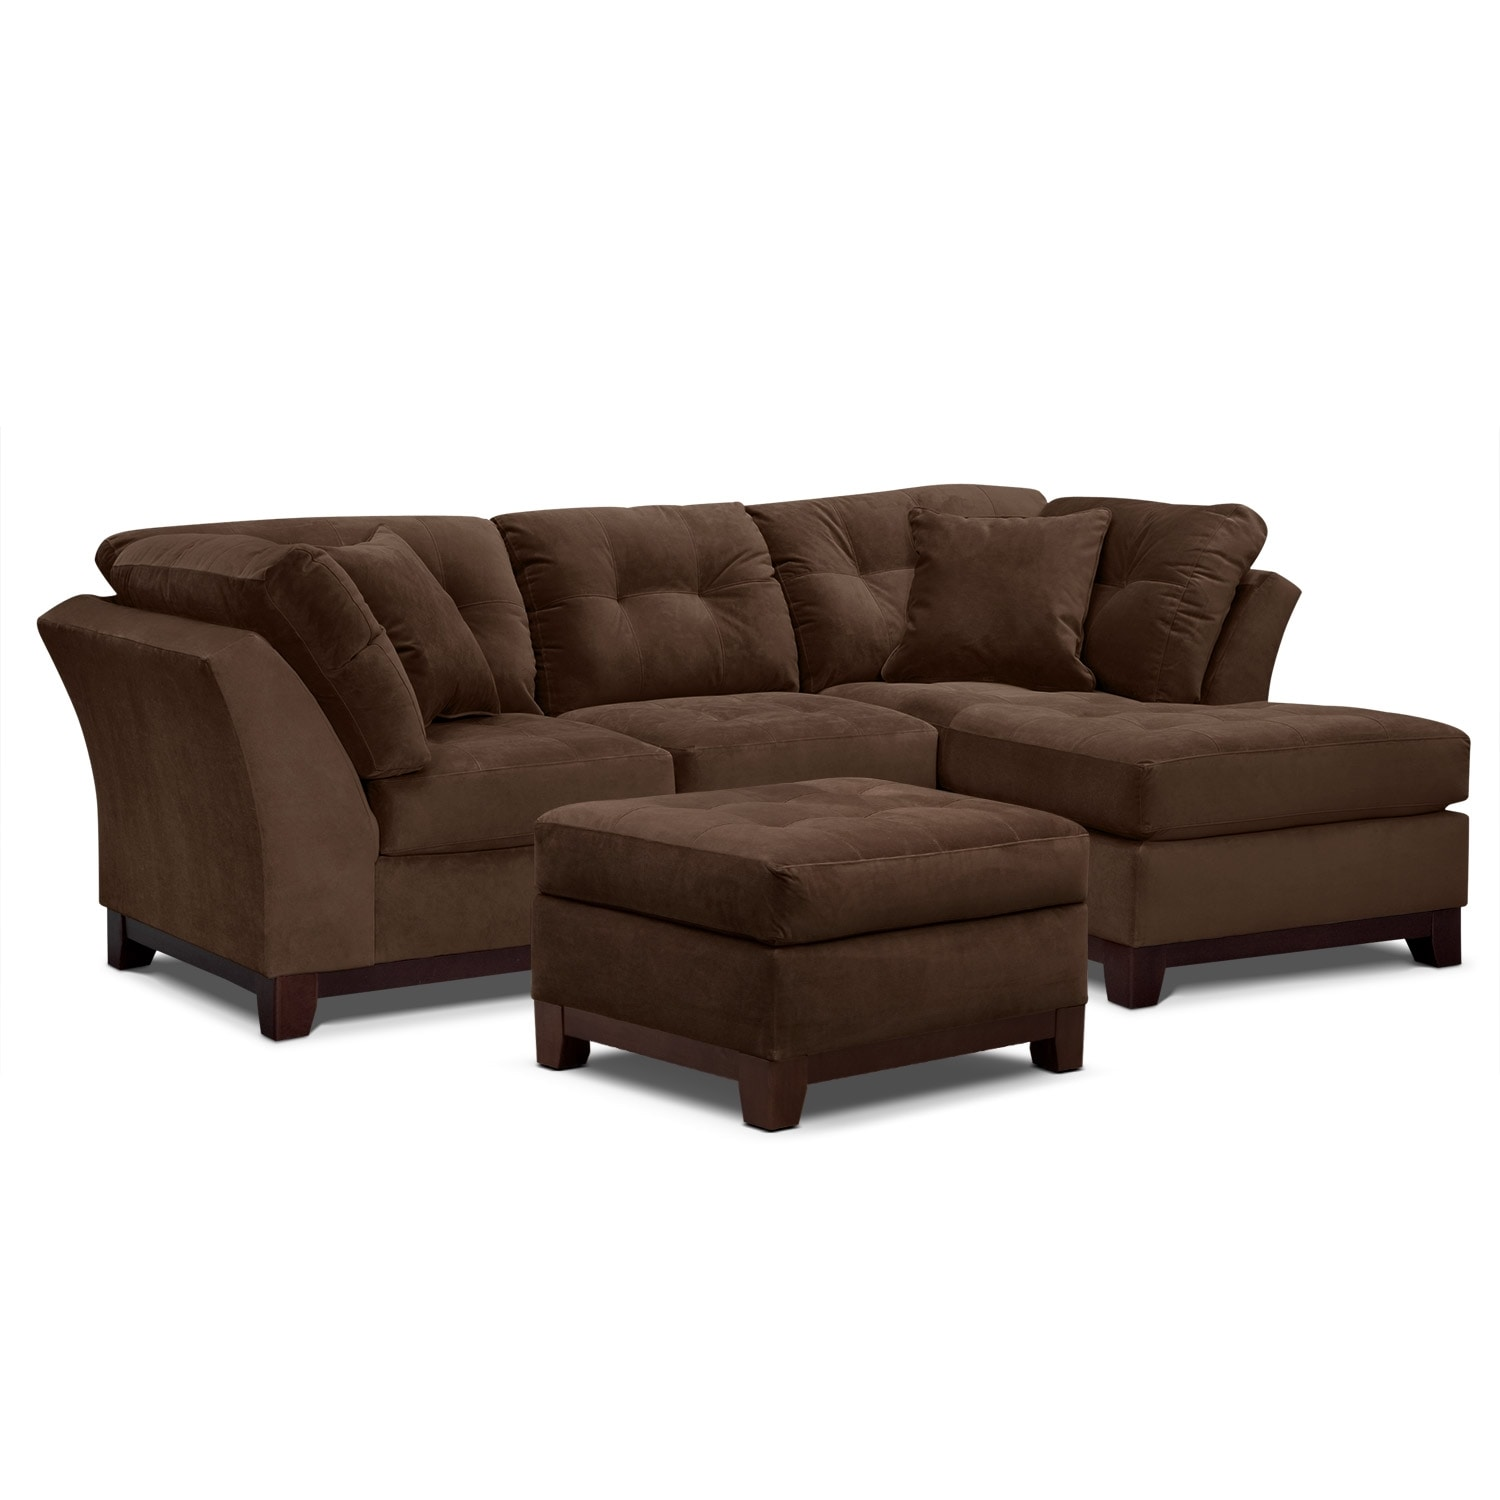 Living Room Furniture - Solace Chocolate II 2 Pc. Sectional (Alternate Reverse) and Ottoman